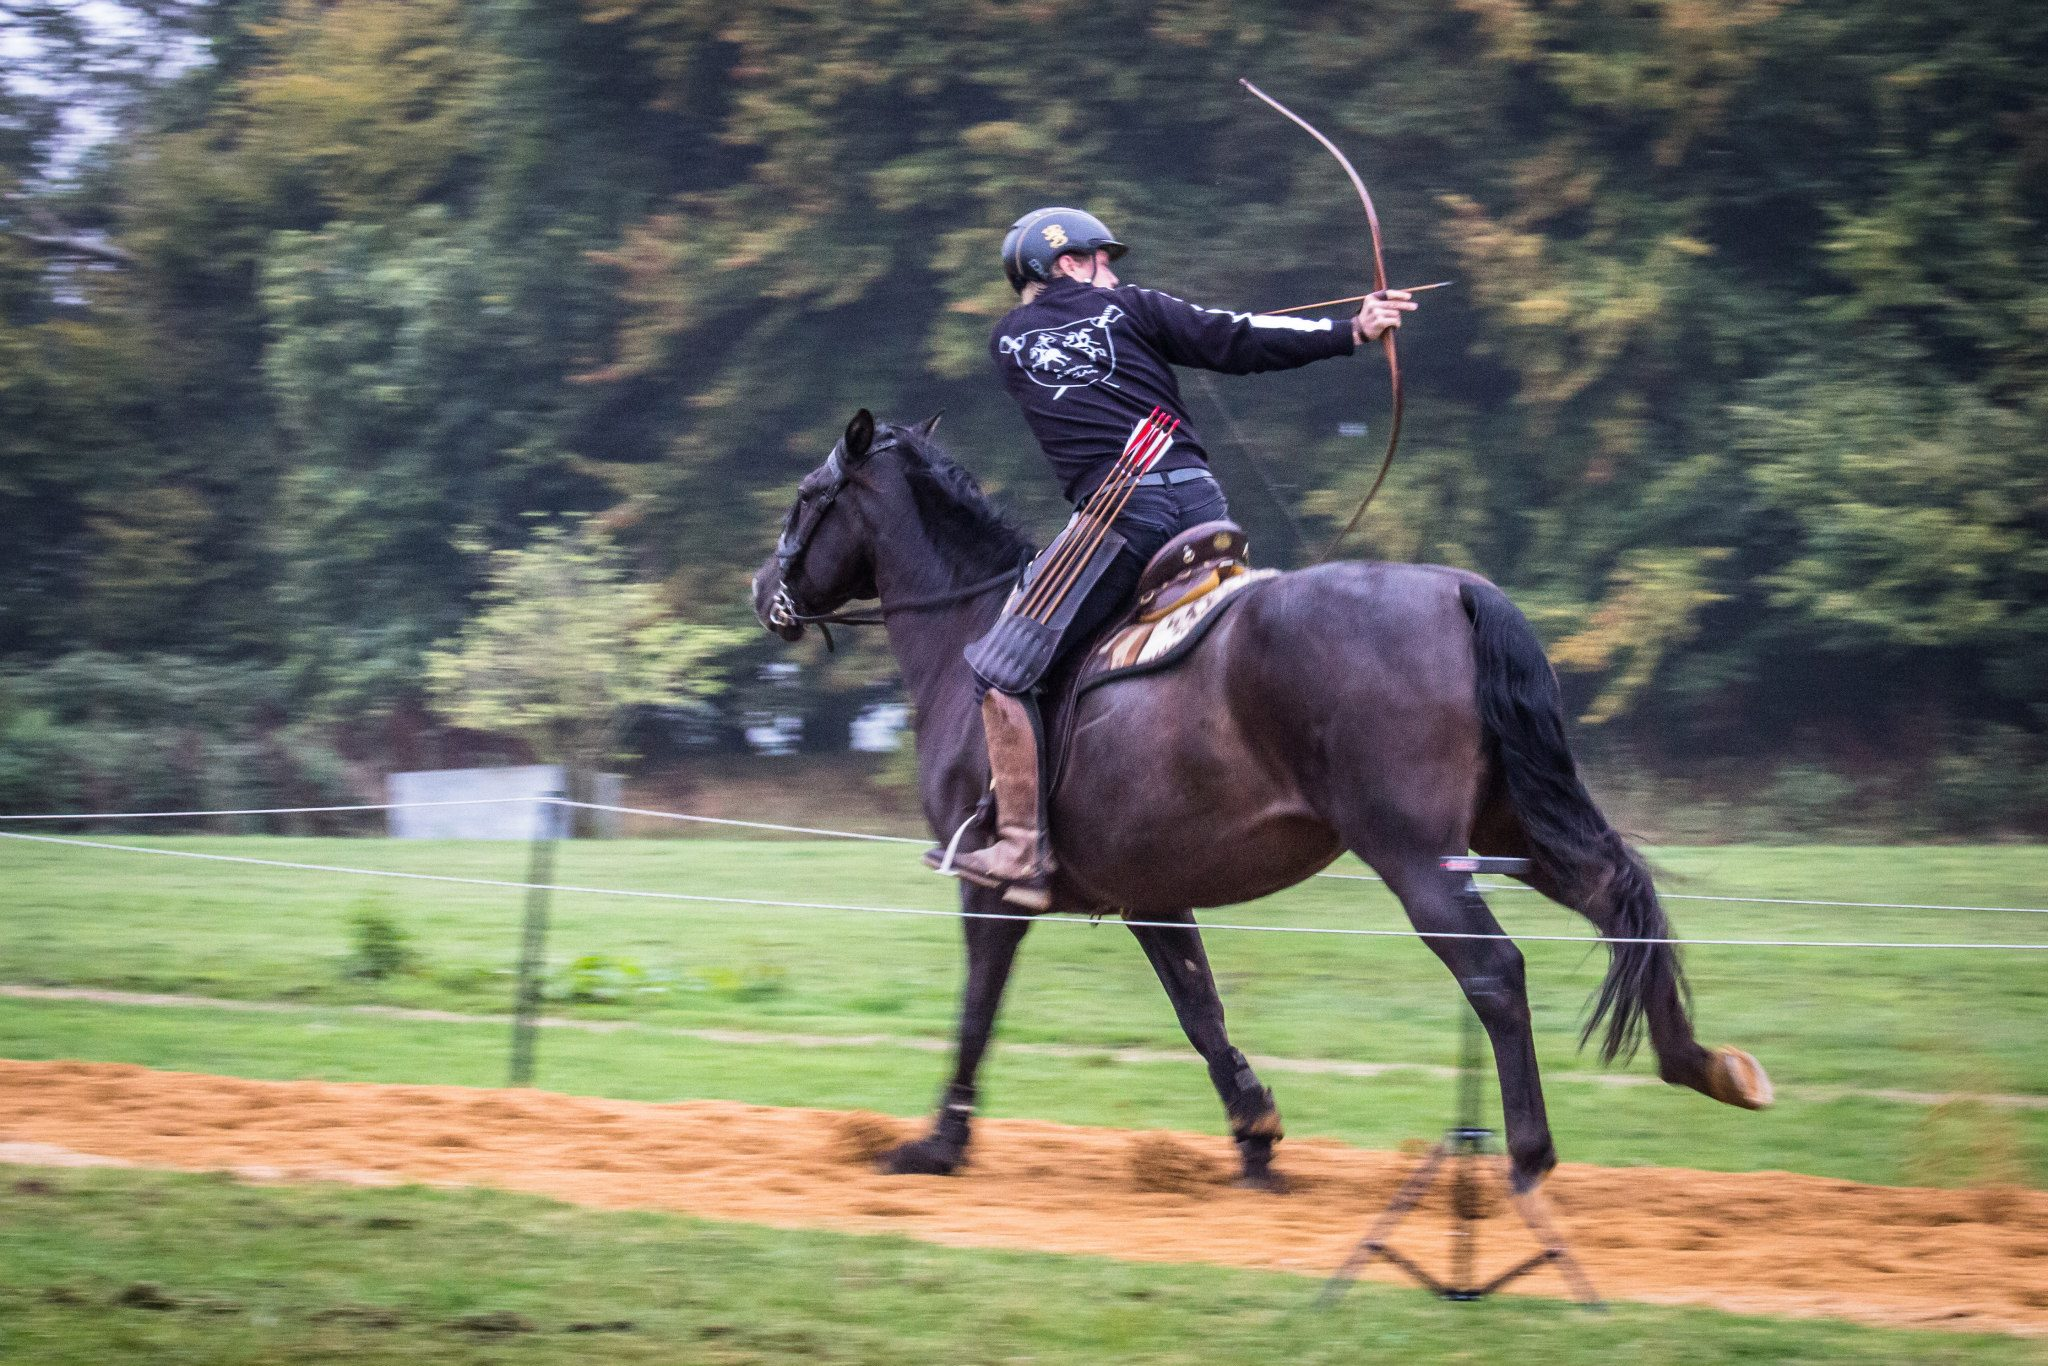 Mounted archery, ratsastusjousiammunta, UK GP 2014, Hemel Hempstead, The Centre of Horseback Combat